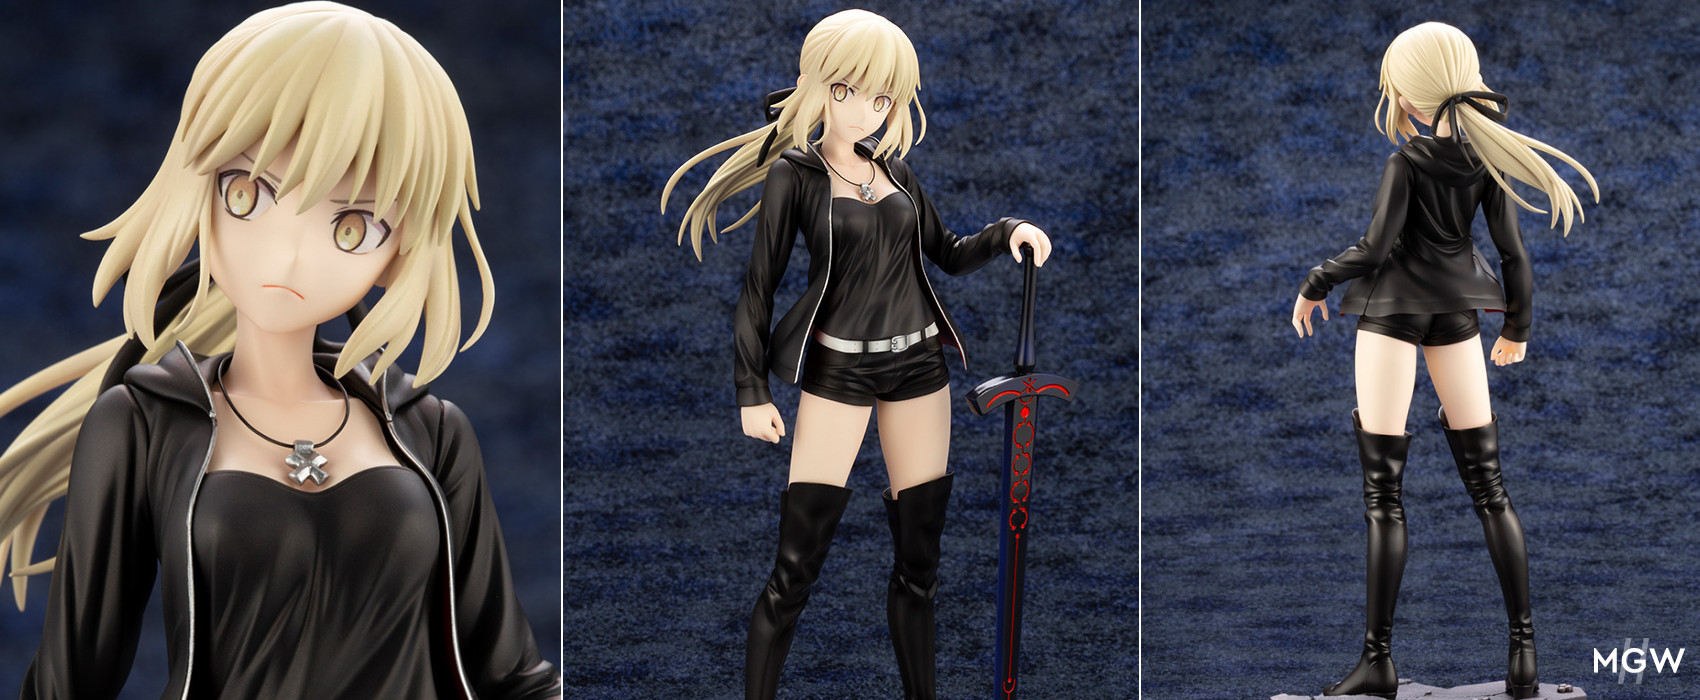 Saber Altria Pendragon Alter Casual ver. by Kotobukiya from Fate Grand Order MyGrailWatch Anime Figure Guide